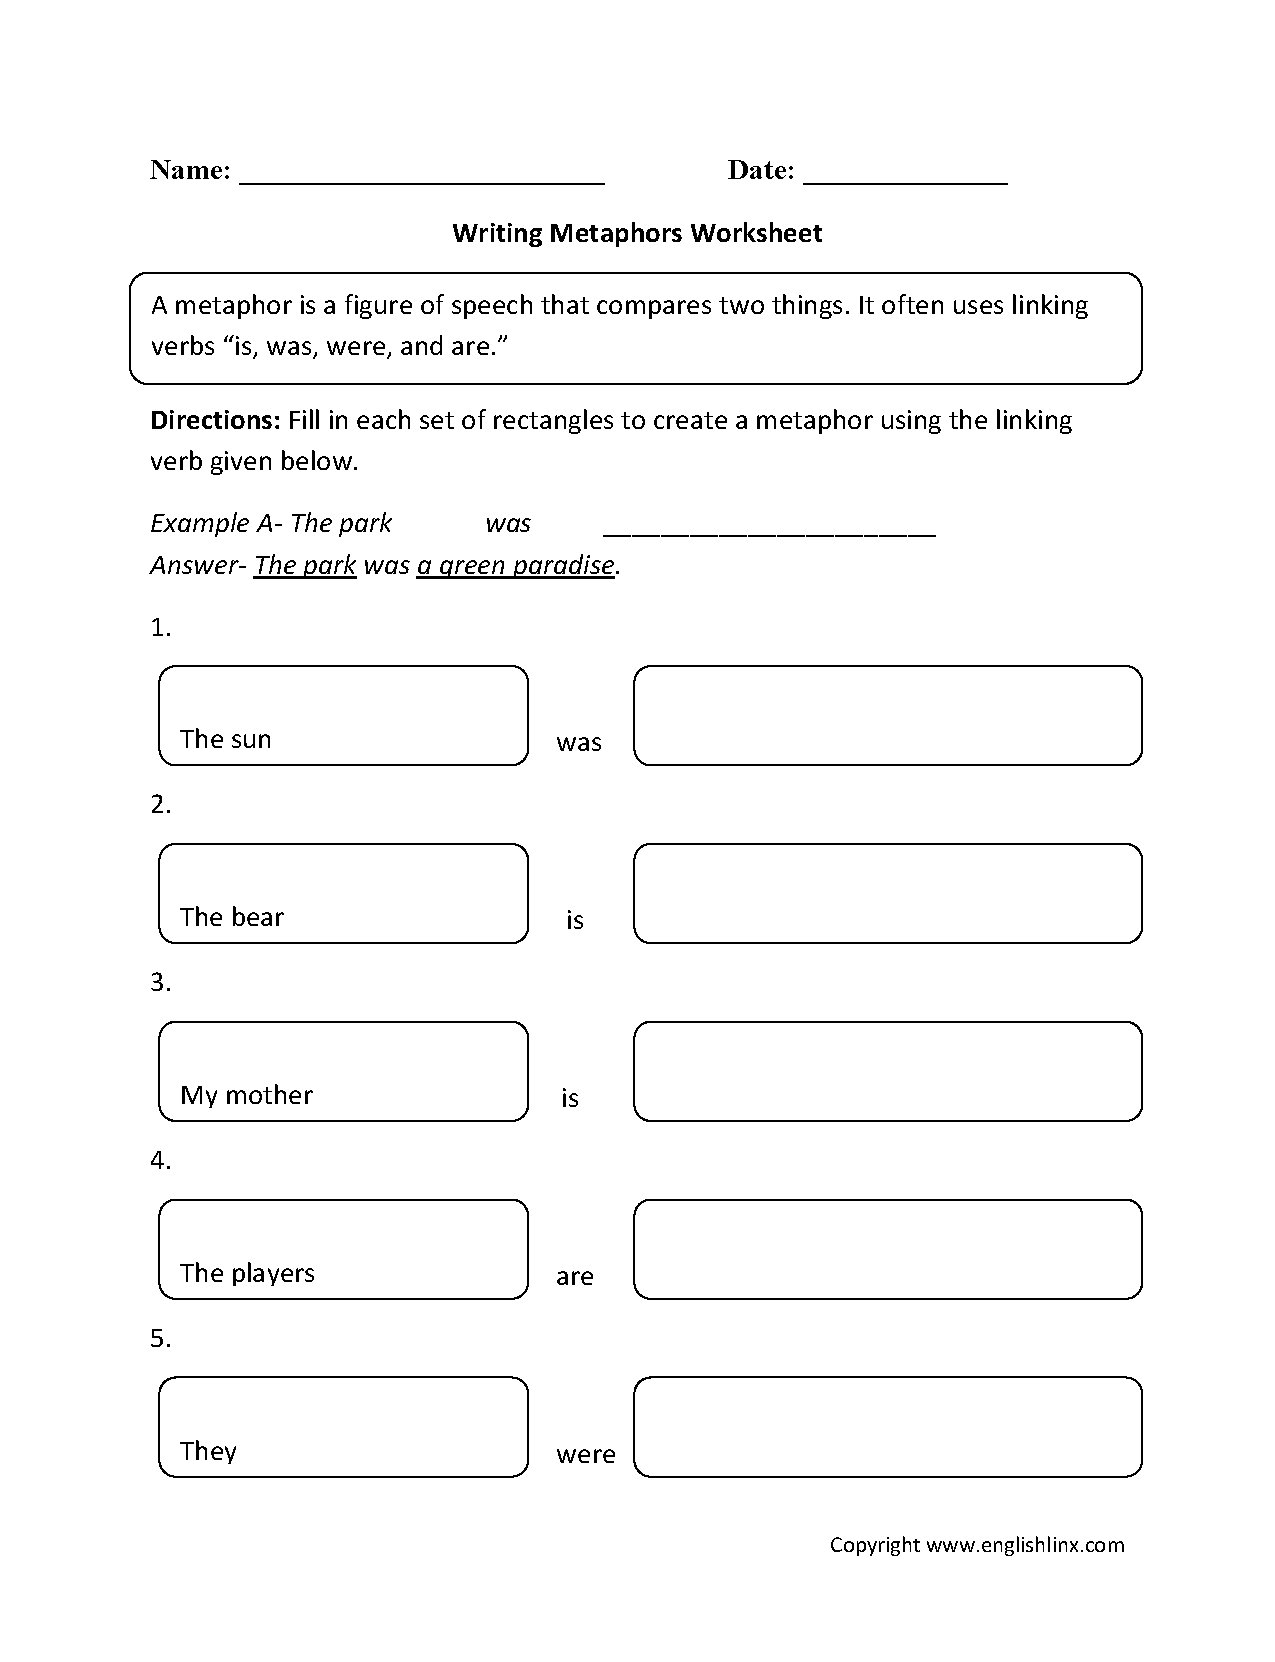 Writing Metaphors Worksheet Part 1 Beginner